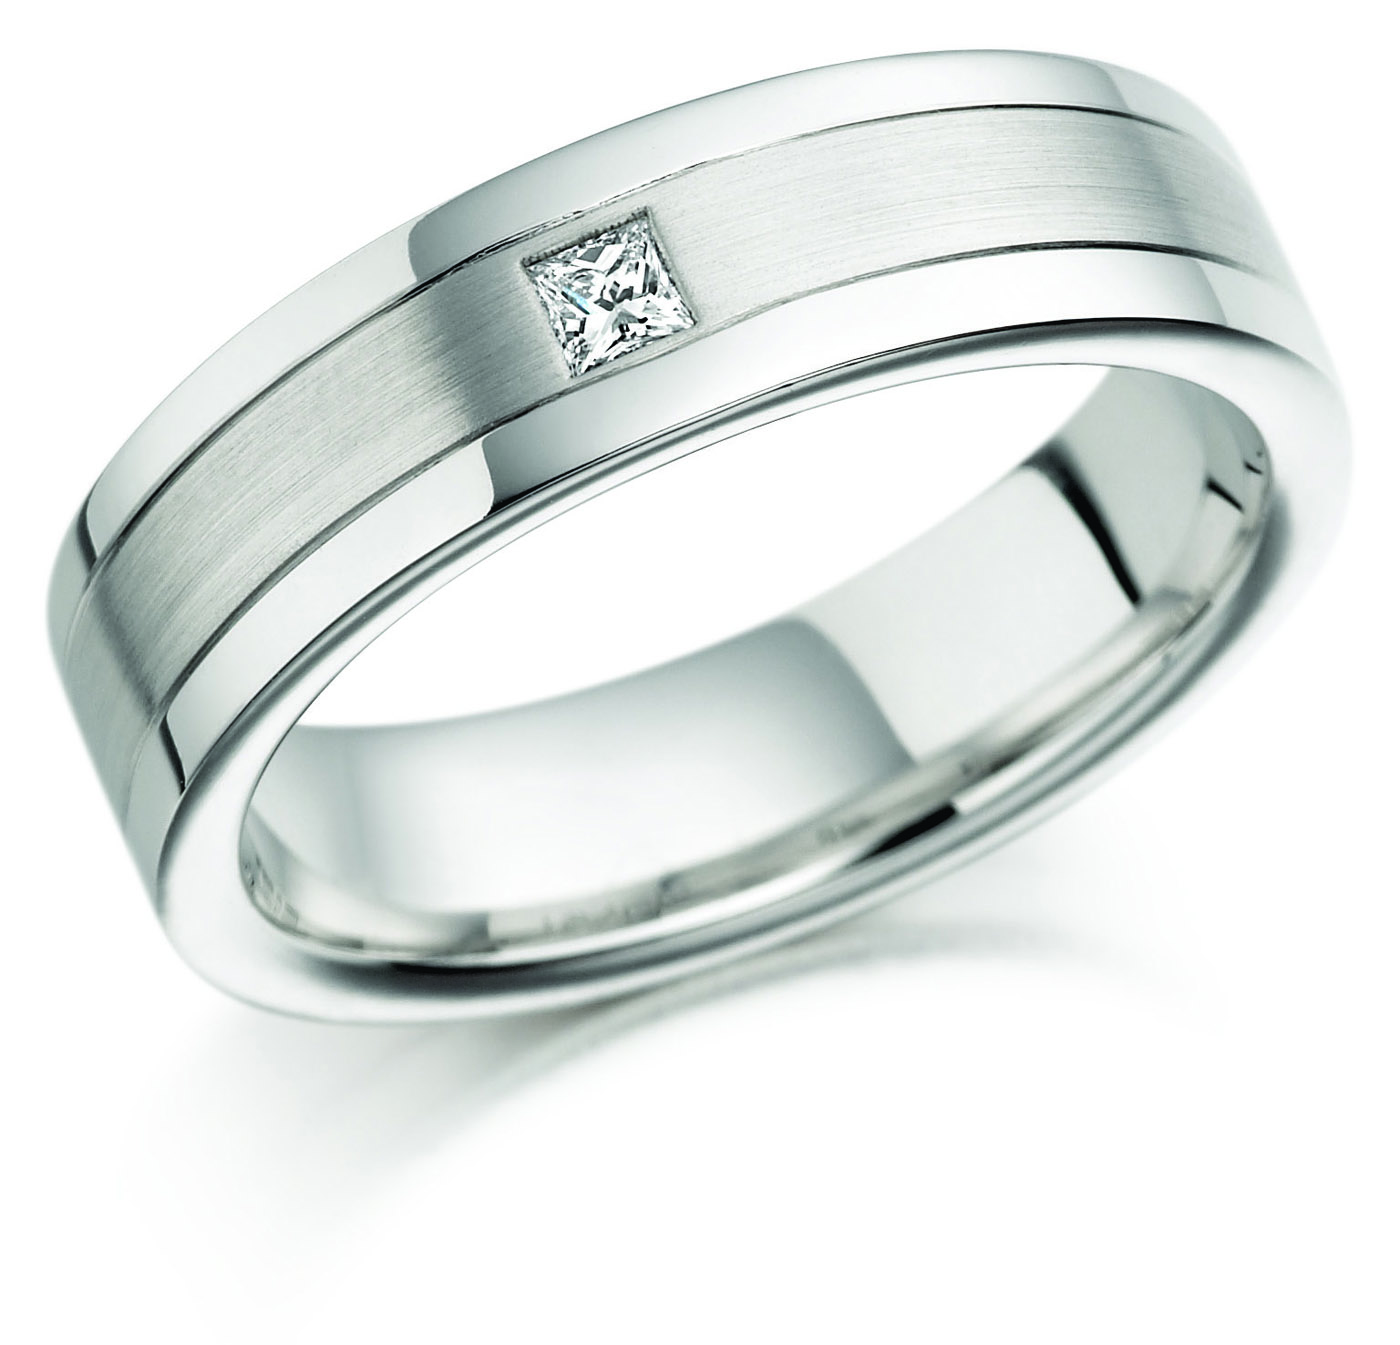 Jewellery - Gentlemens Wedding Rings